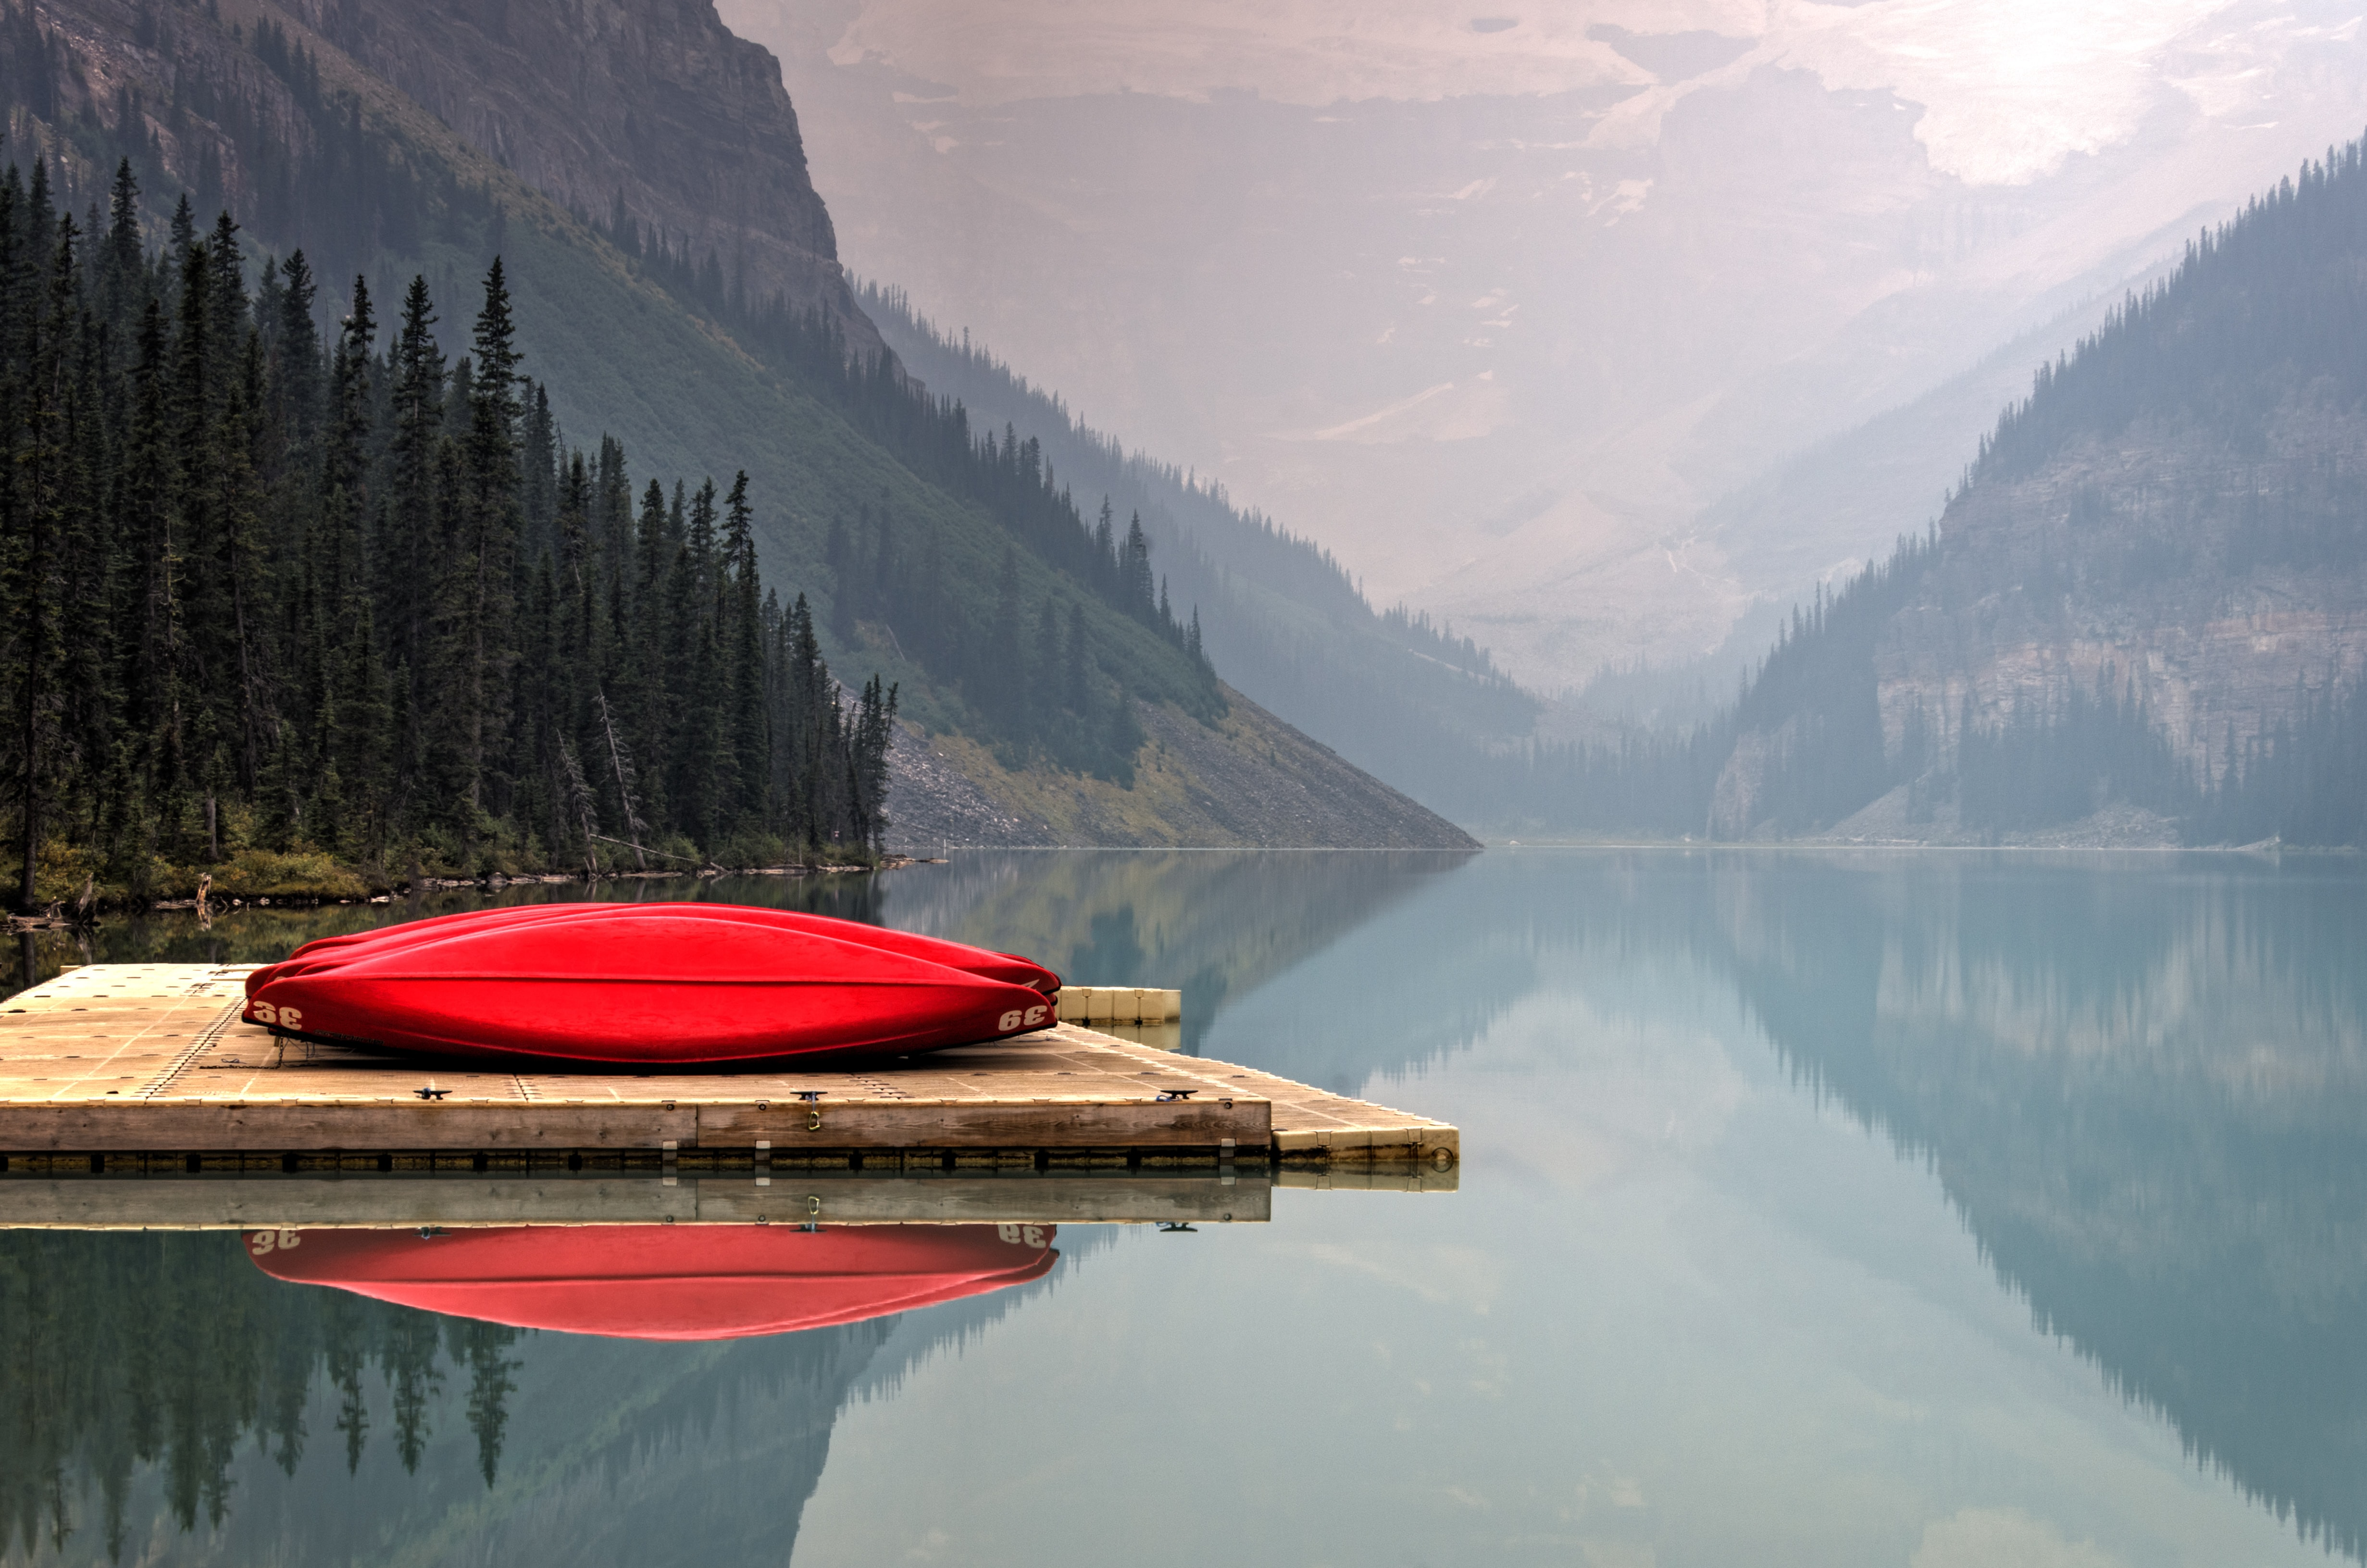 A bright red canoe sits on a wooden dock on a serene Lake Louise